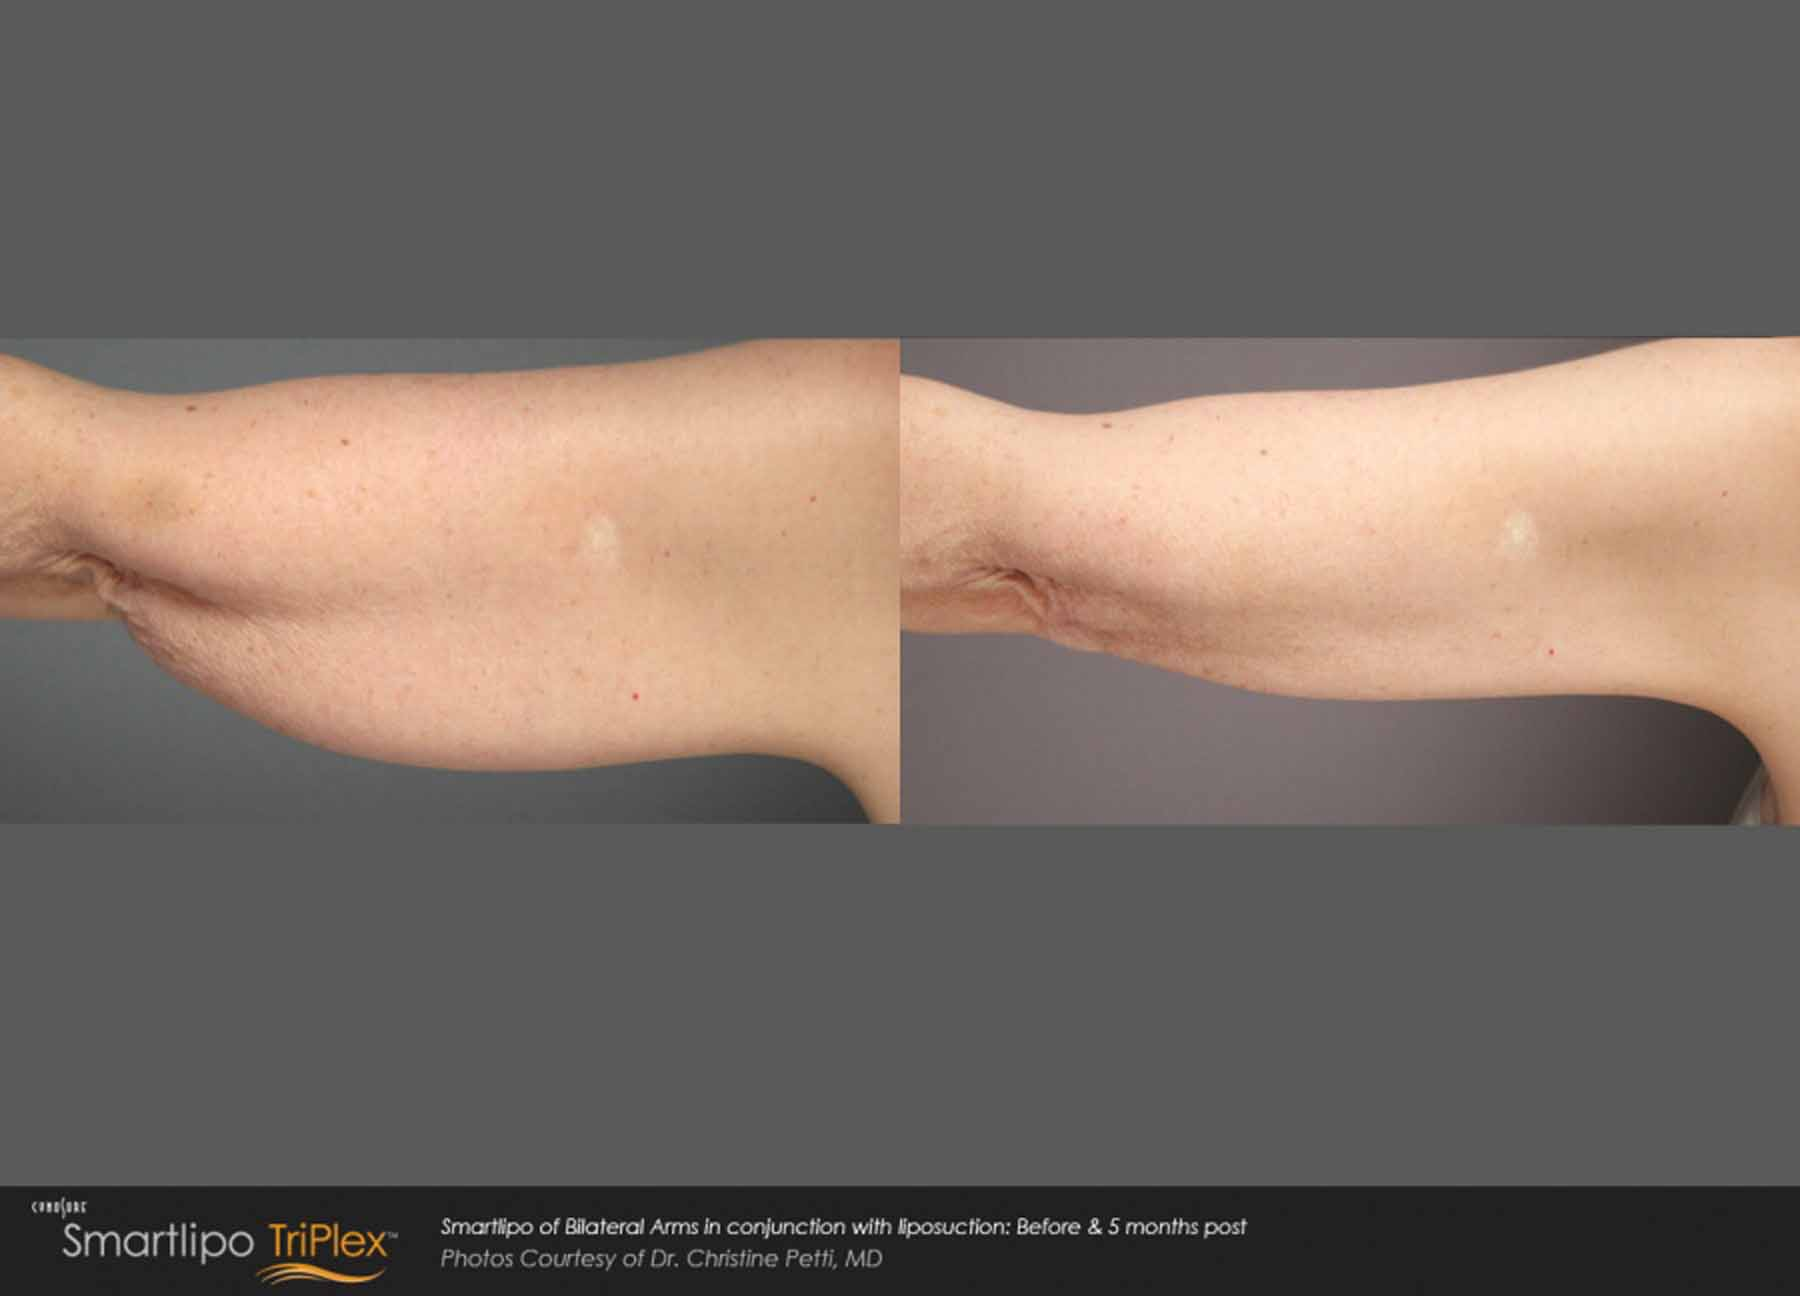 Woman's arm before and after being treated with SmartLipo TriPlex